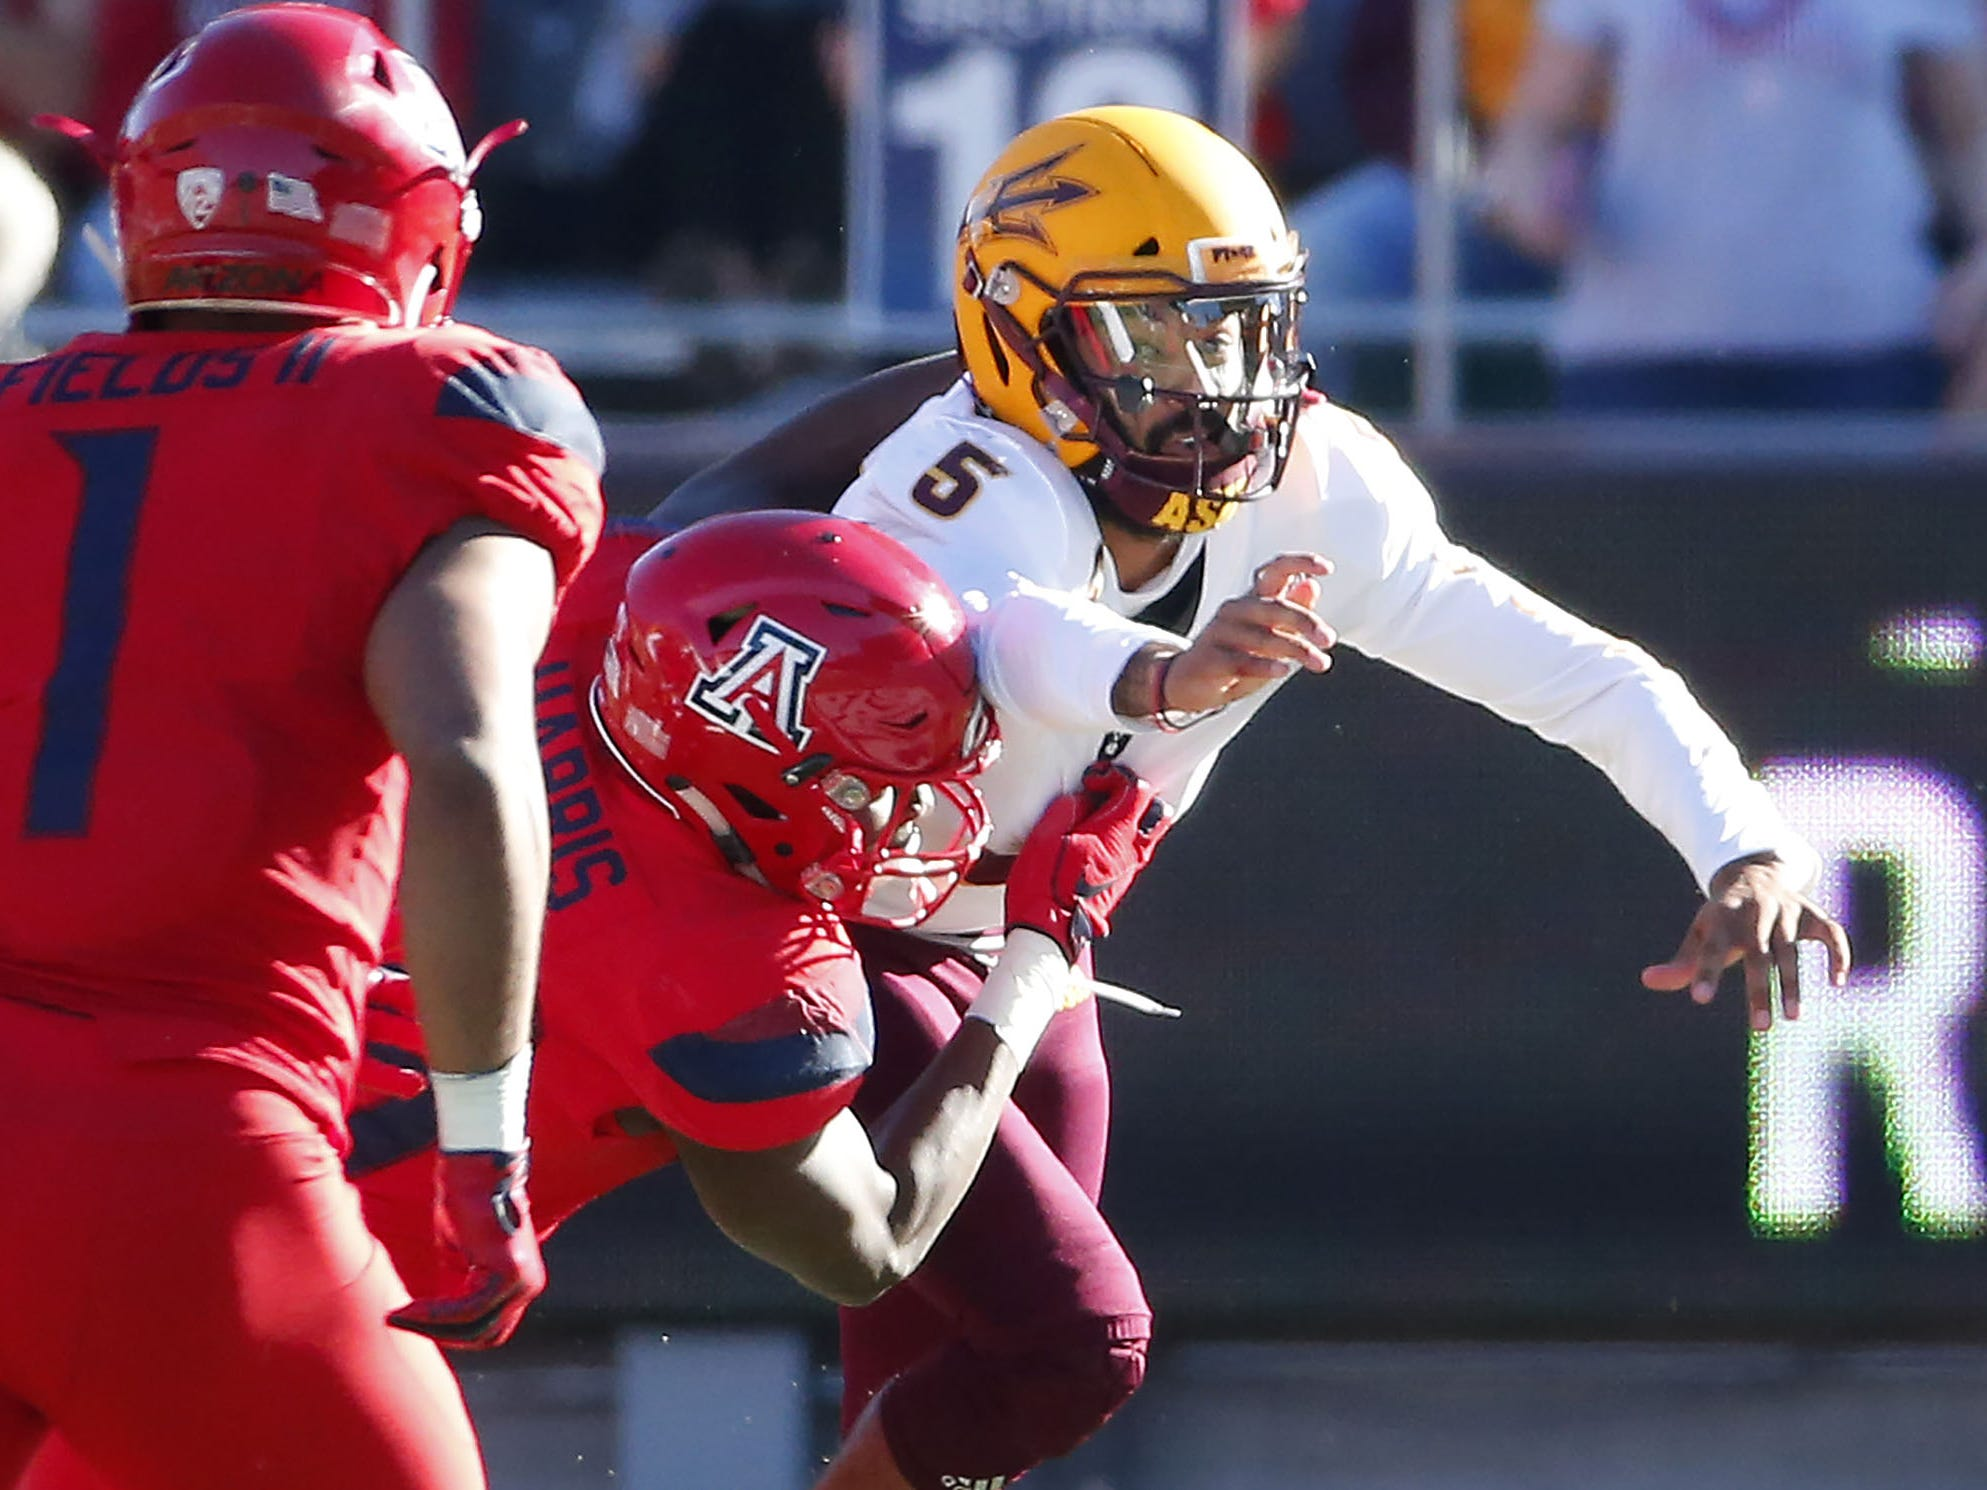 Arizona Wildcats defensive end Jalen Harris (49) causes Arizona State Sun Devils quarterback Manny Wilkins (5) to fumble the ball during the Territorial Cup football game at Arizona Stadium in Tucson on November 24.